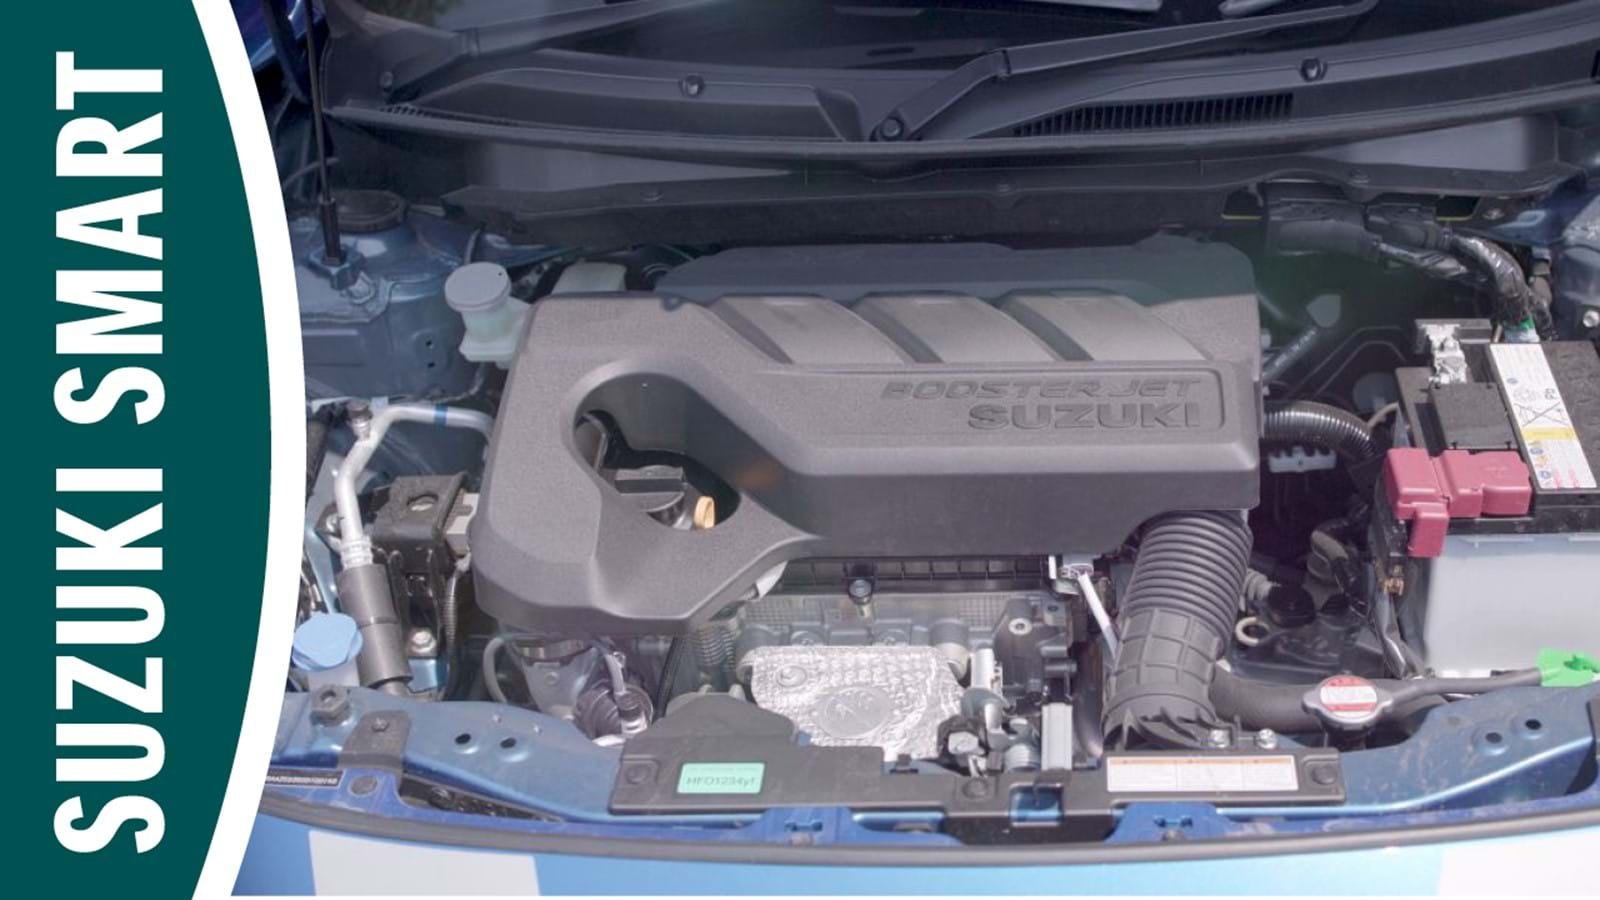 Suzuki service promise find out more today suzuki cars uk play video solutioingenieria Images